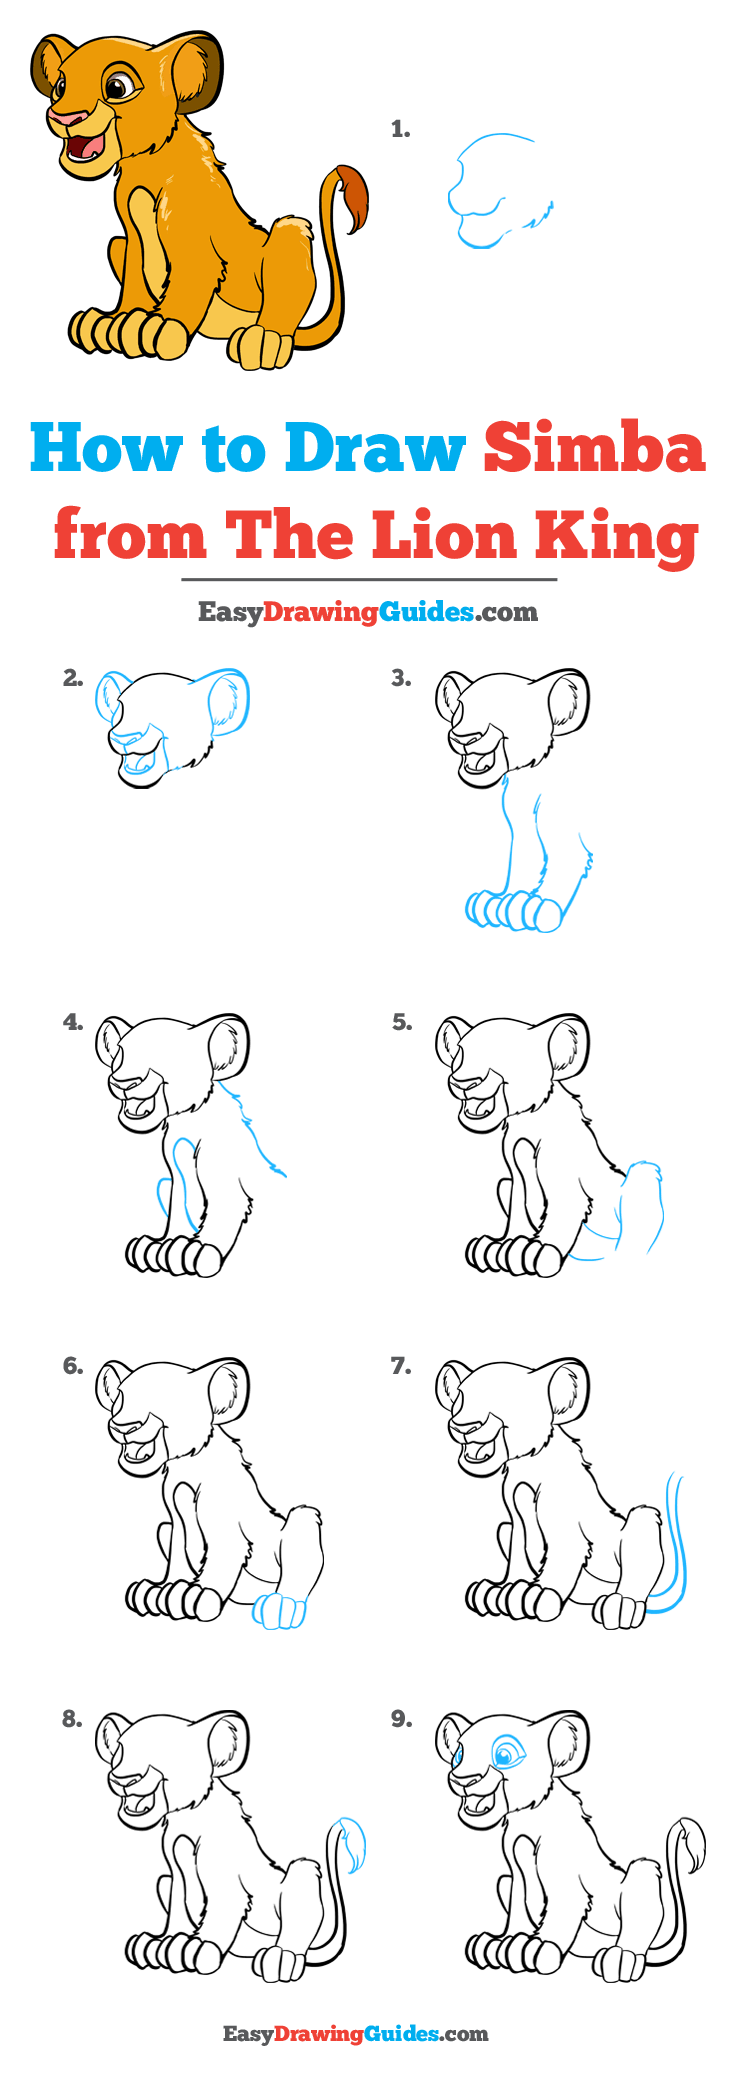 How to Draw Simba from the Lion King